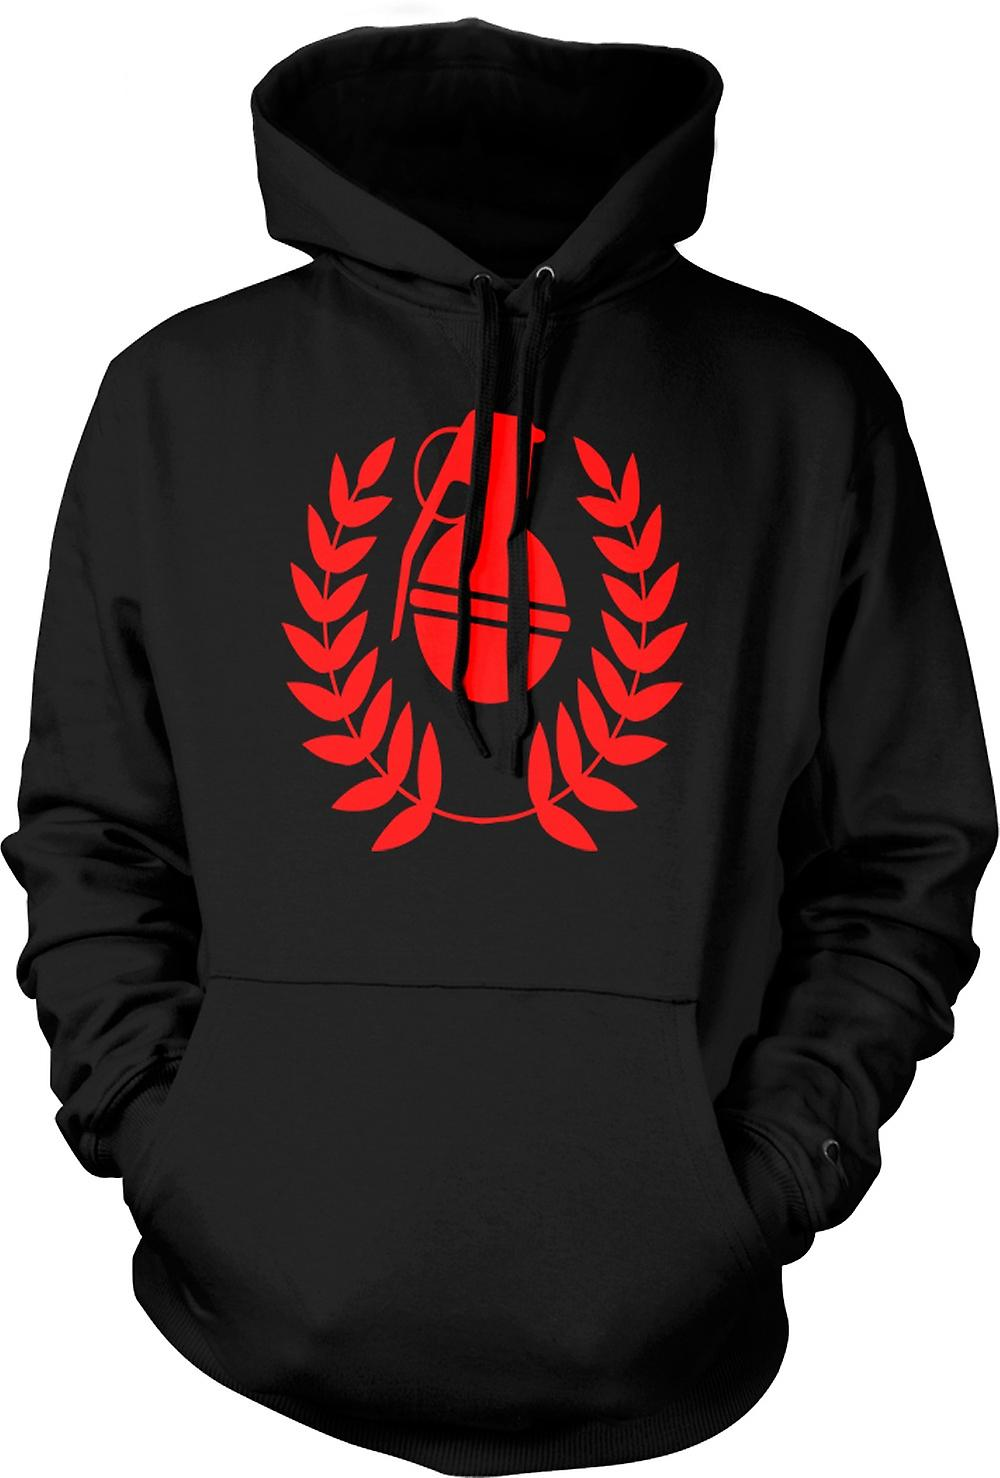 Mens Hoodie - Grenade For Peace - Antiwar